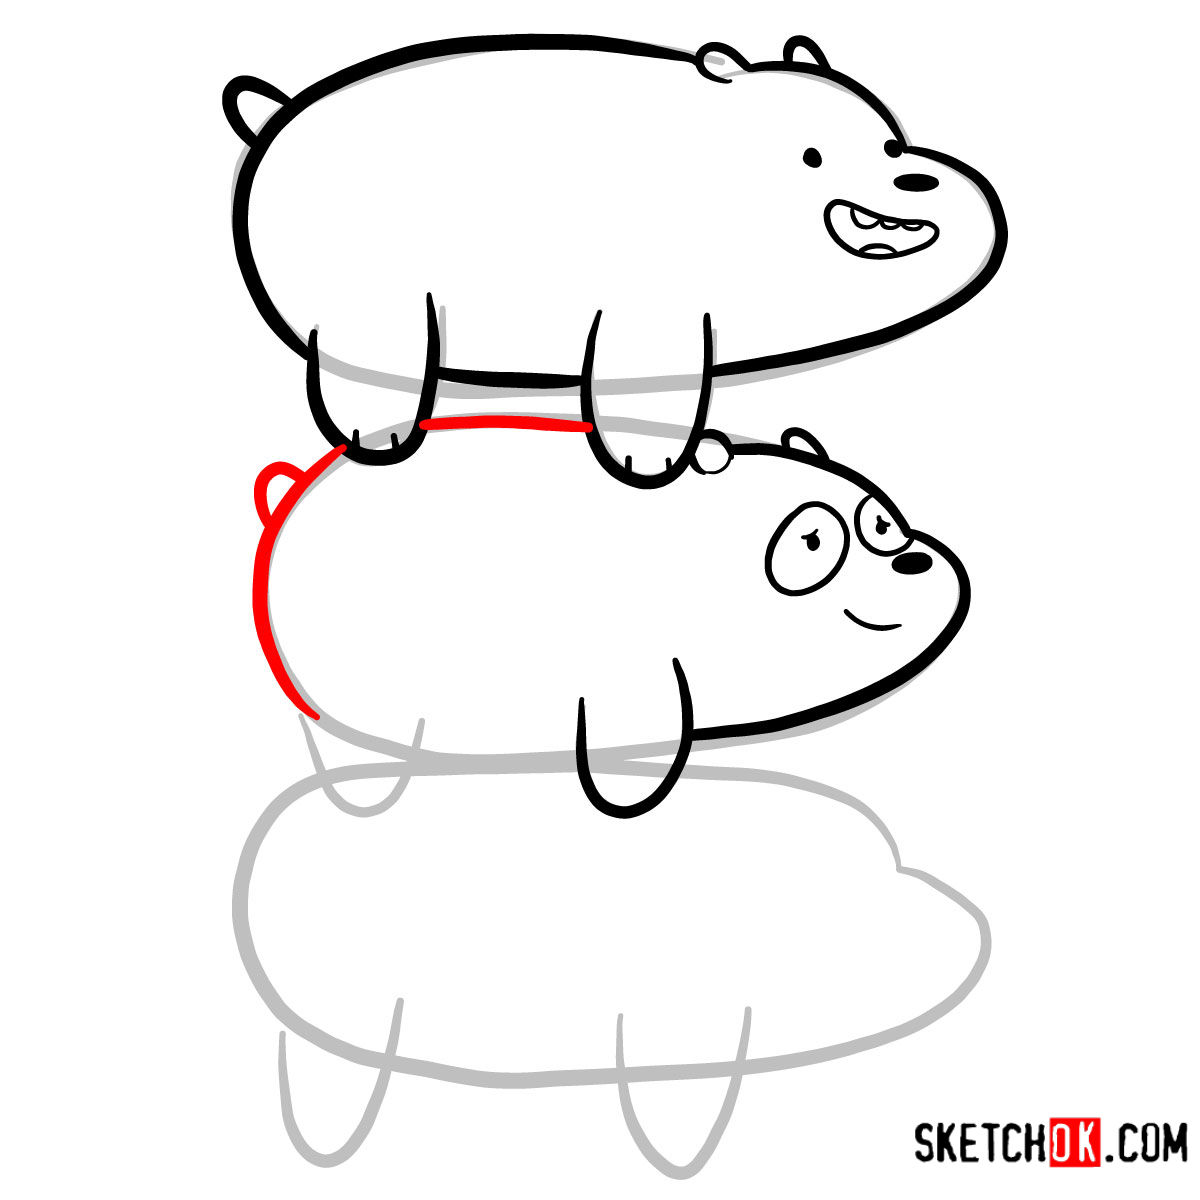 How to draw the bears standing on each others back | We Bare Bears - step 08